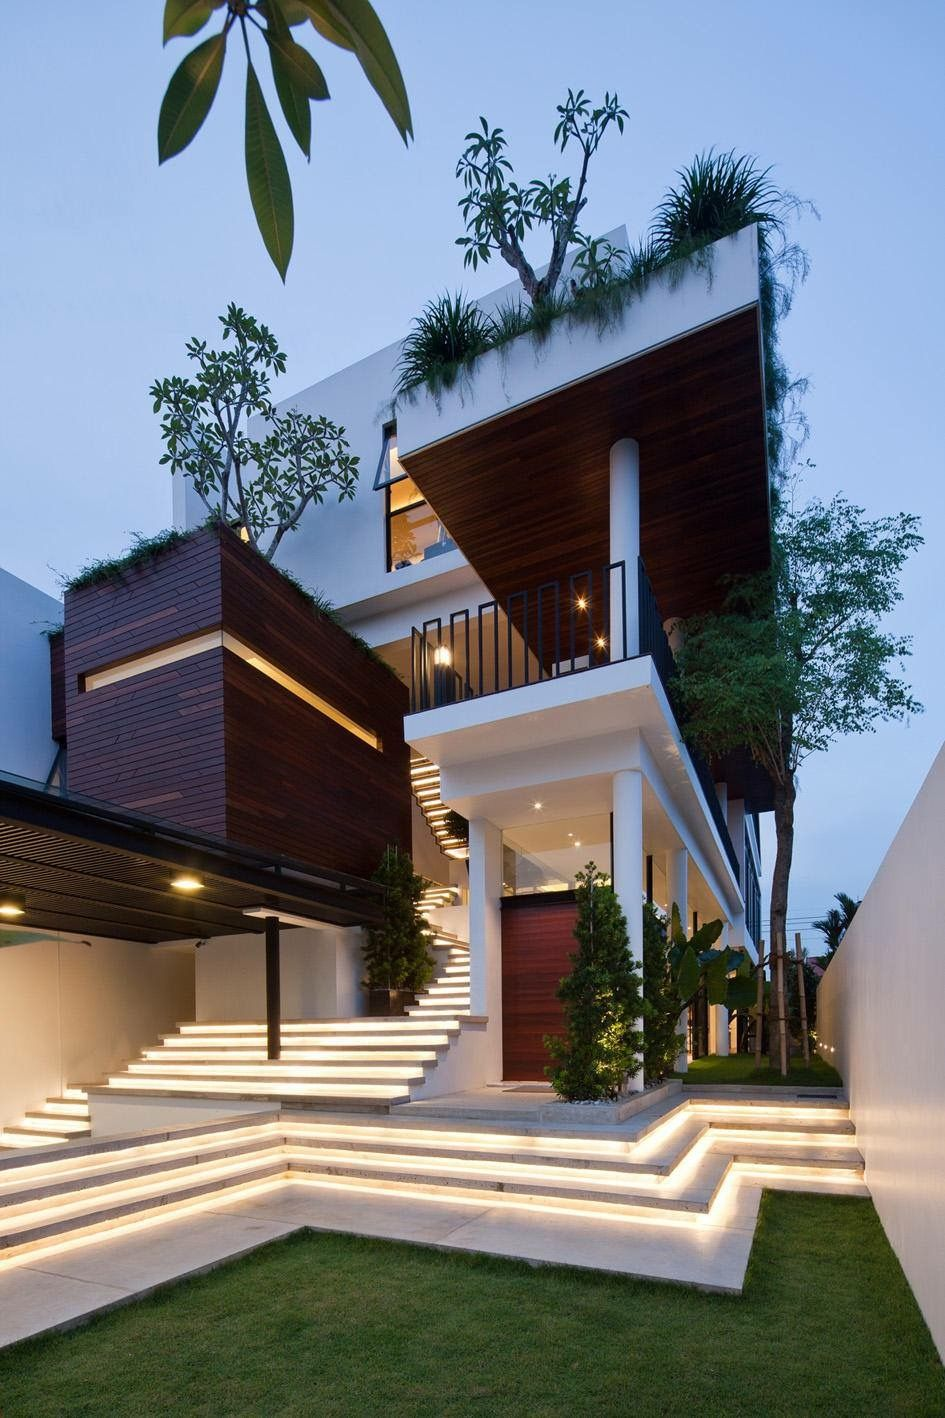 Beautifulit reminds me of logan   run modern house design contemporary houses also pin by manu gowda on architecture rh pinterest